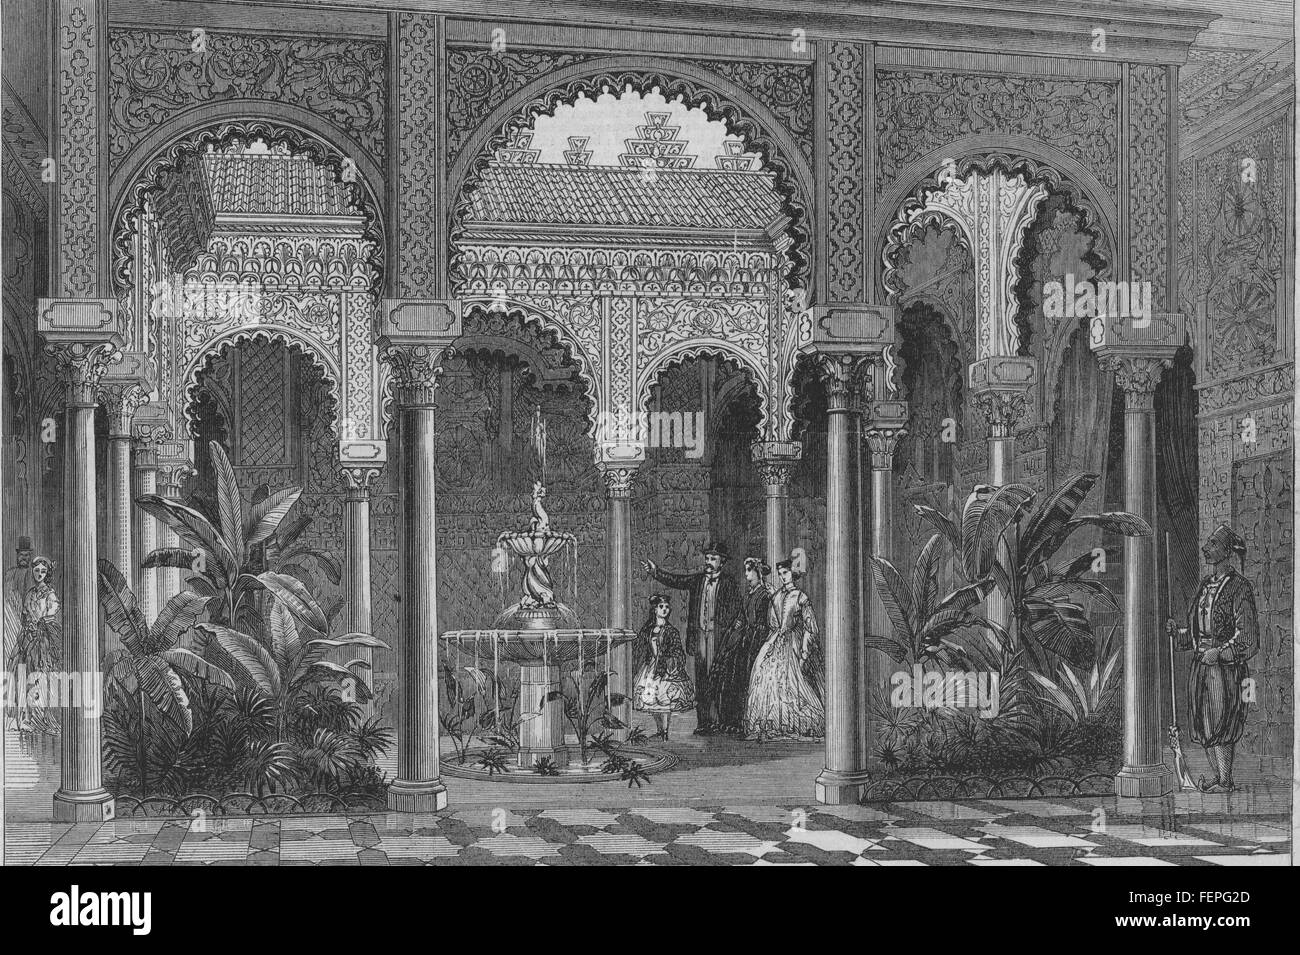 Tunesien-Innere des Palastes des Bey von Tunis 1867. Illustrierte London News Stockbild